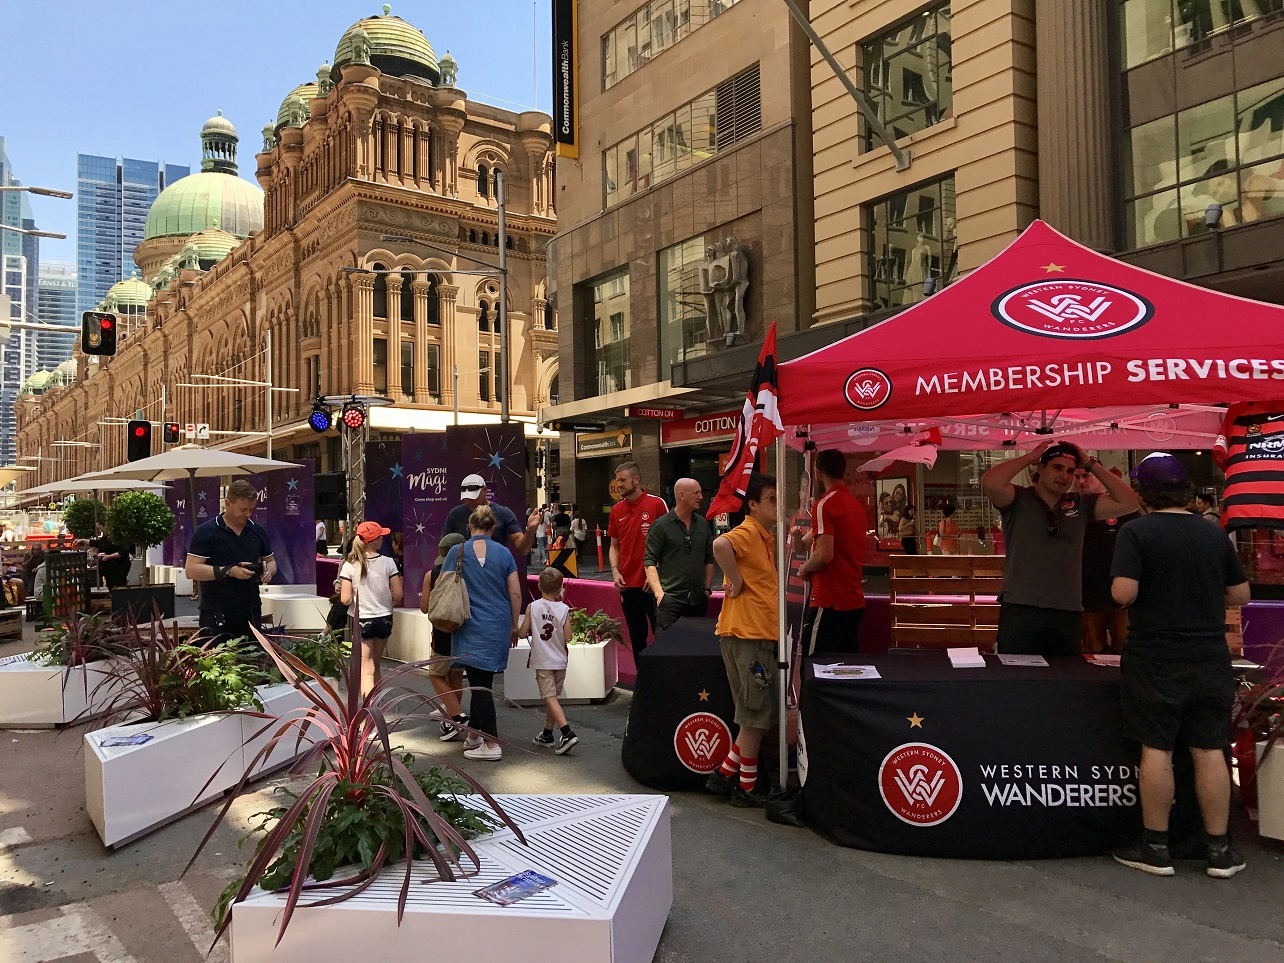 Western Sydney Wanderers players on George Street